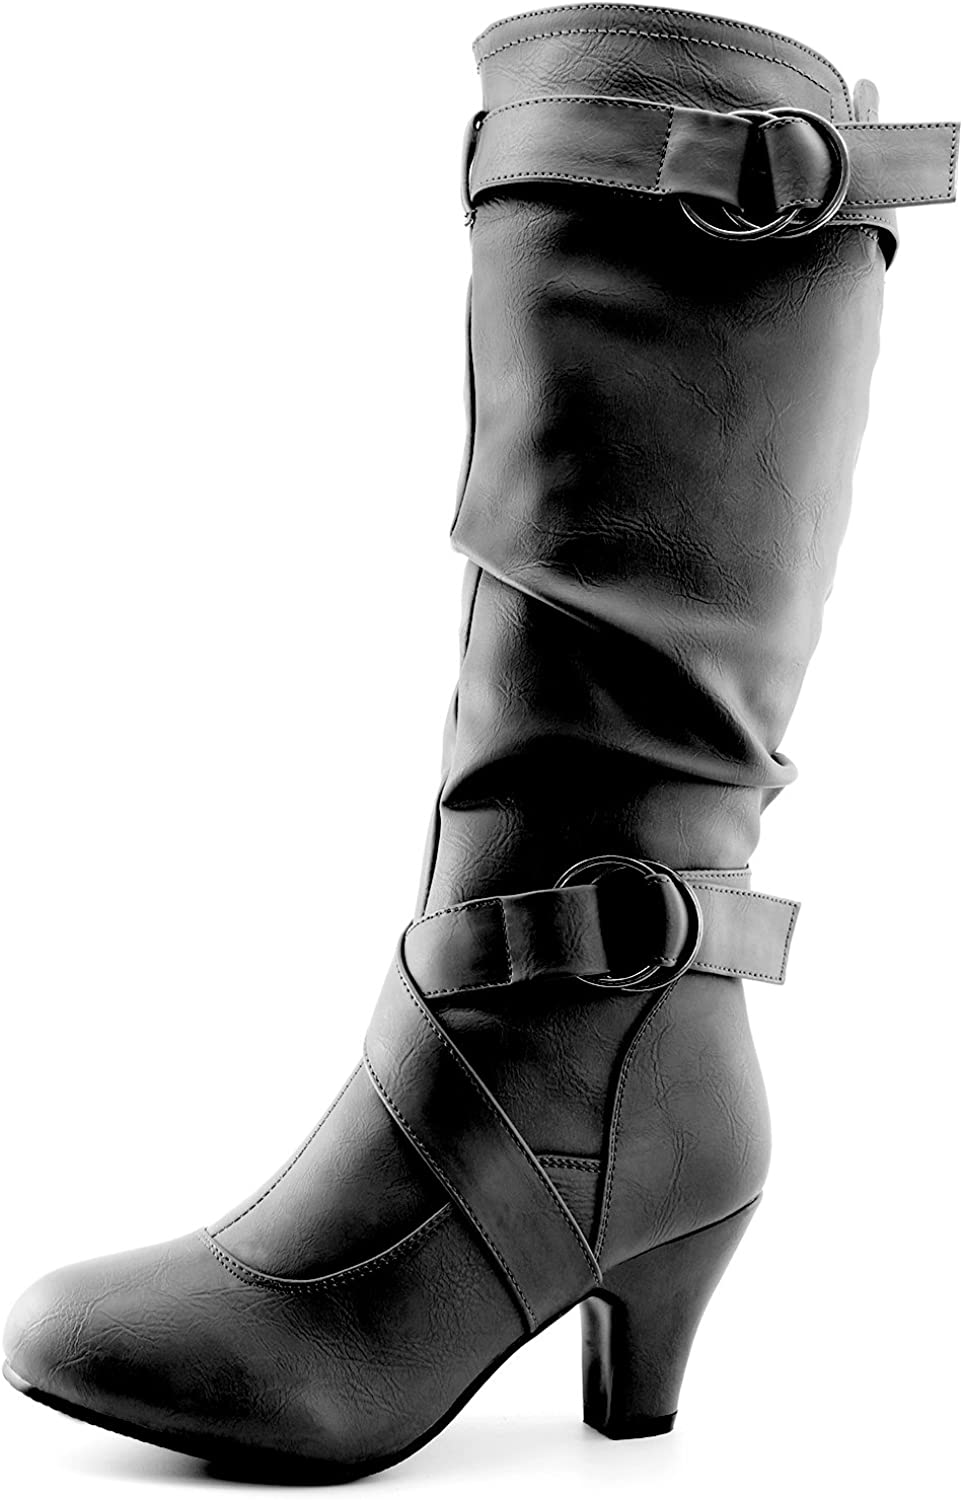 Dailyshoes Women's Mid Calf Ankle Strap Slouchy Fashion Boots, Black PU, 11 B(M) US